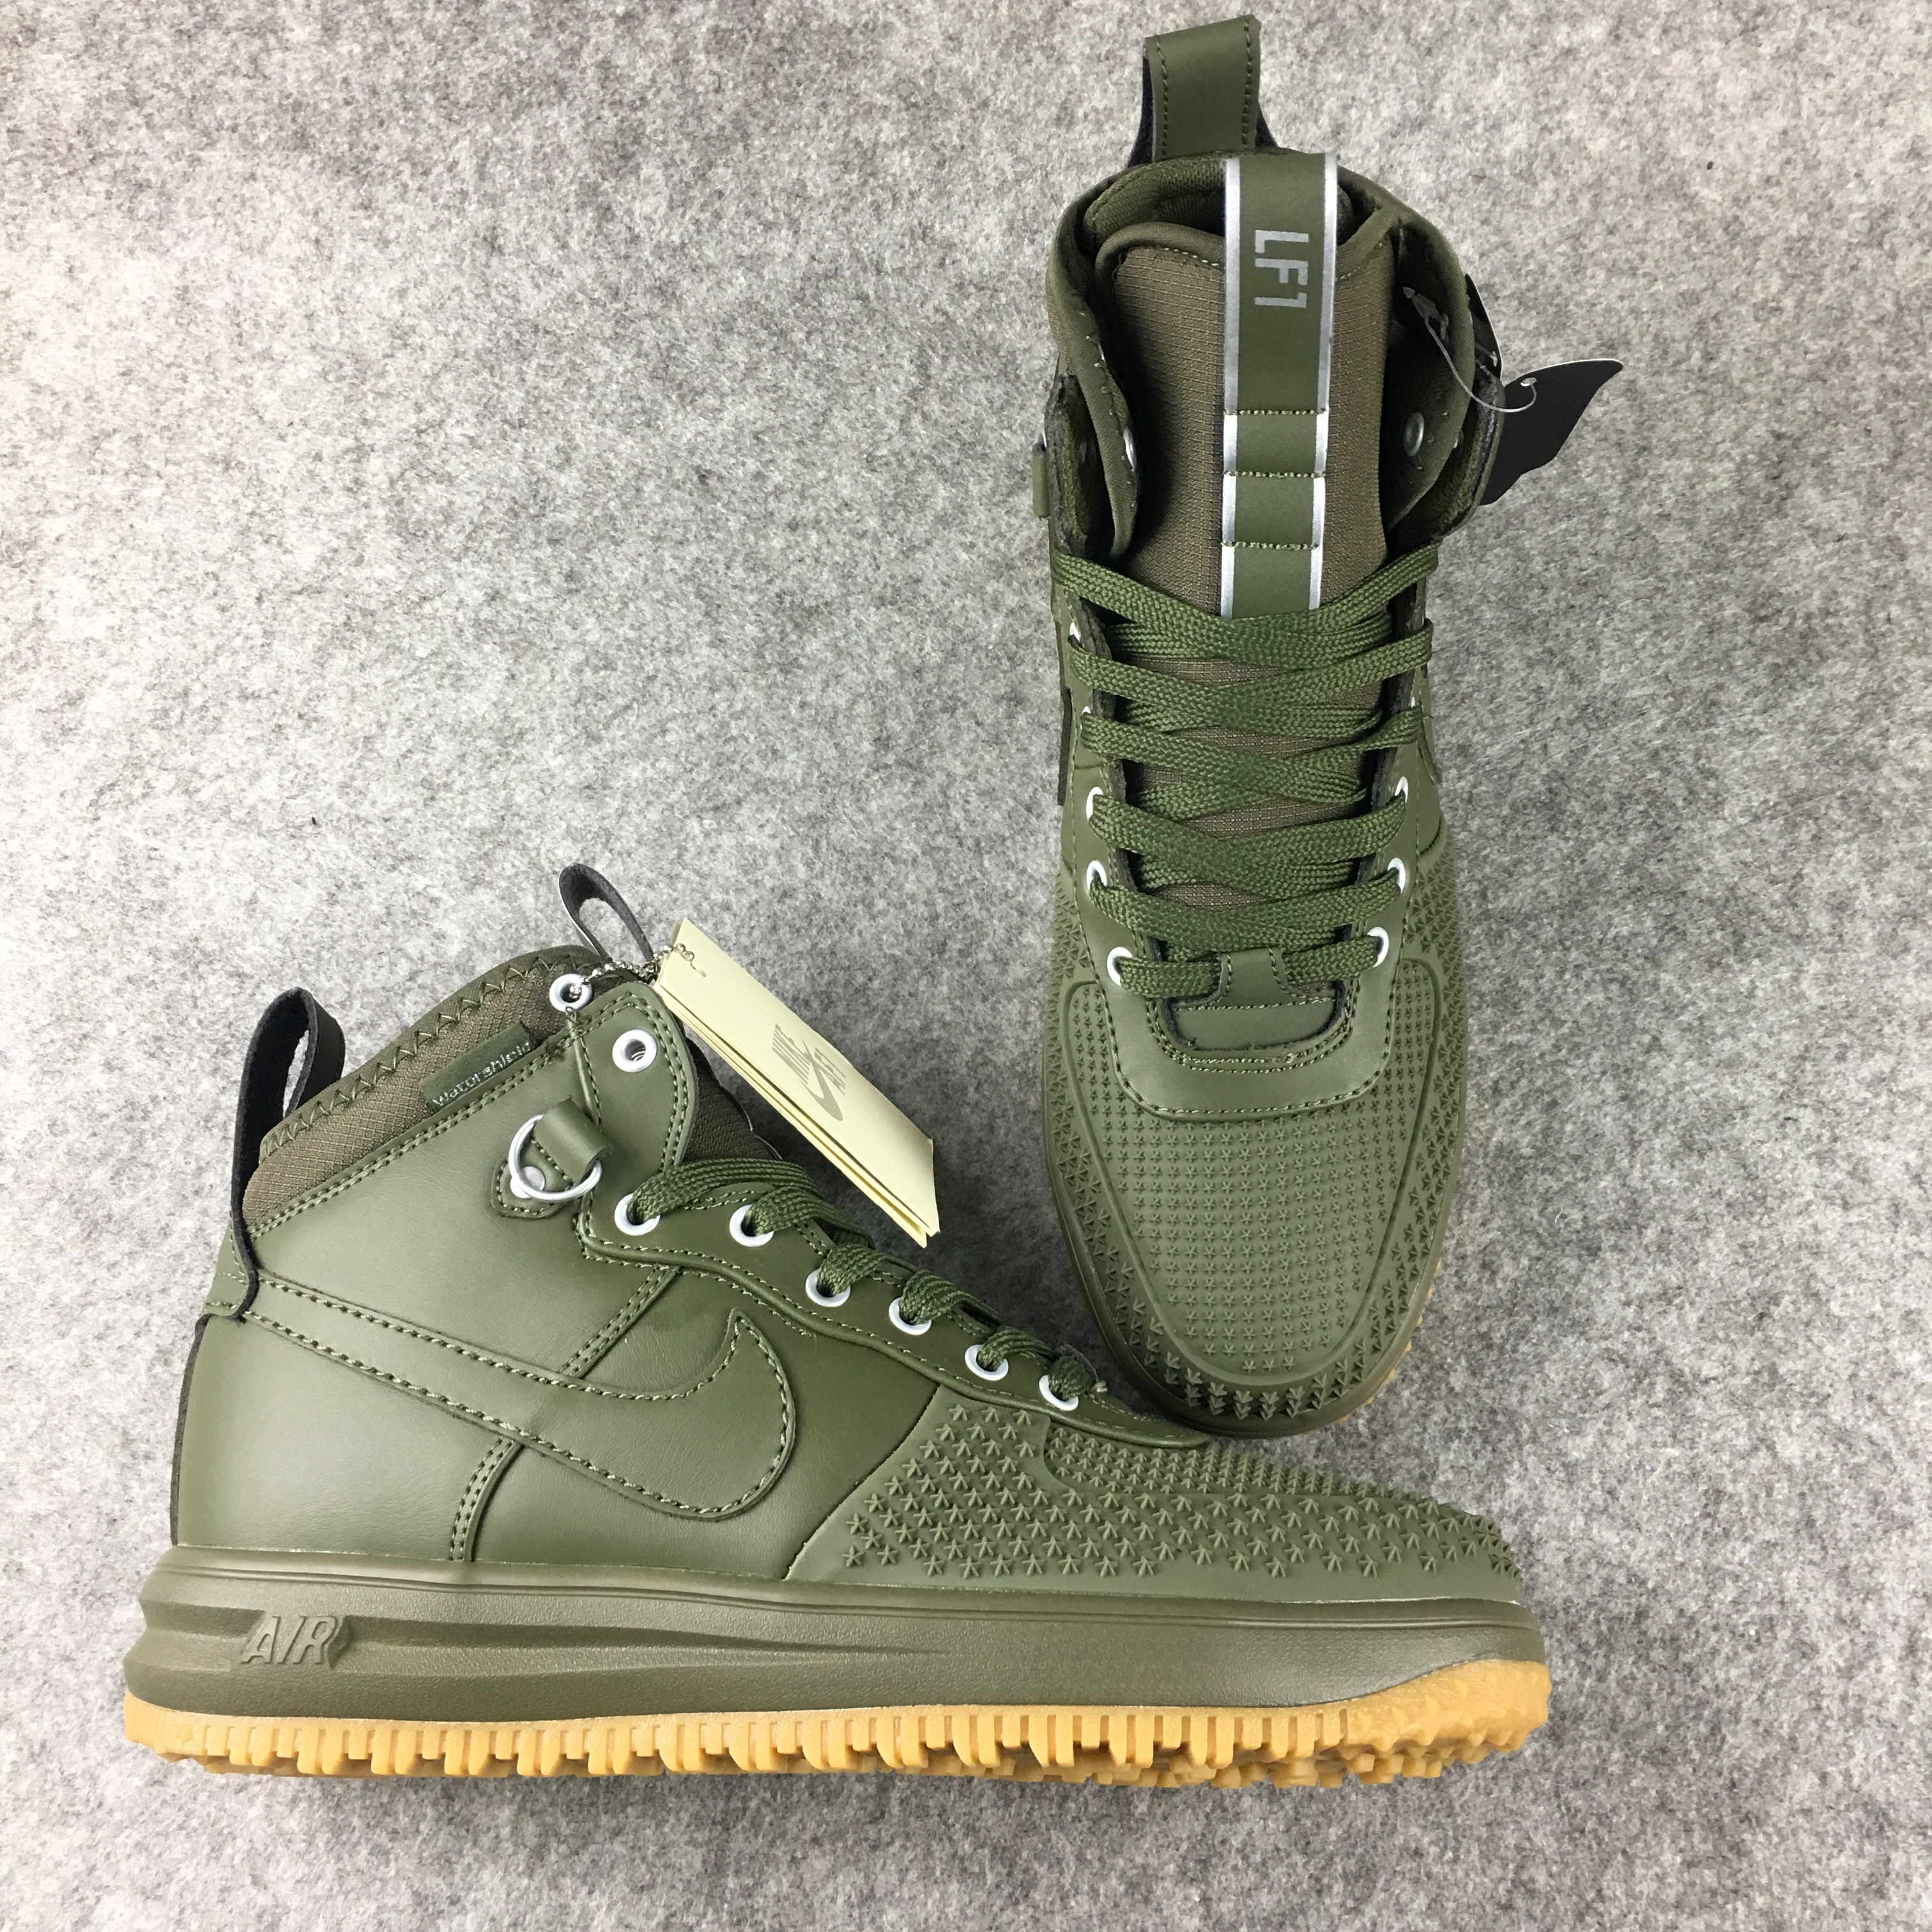 New Nike Lunar Force 1 High Army Green Shoes